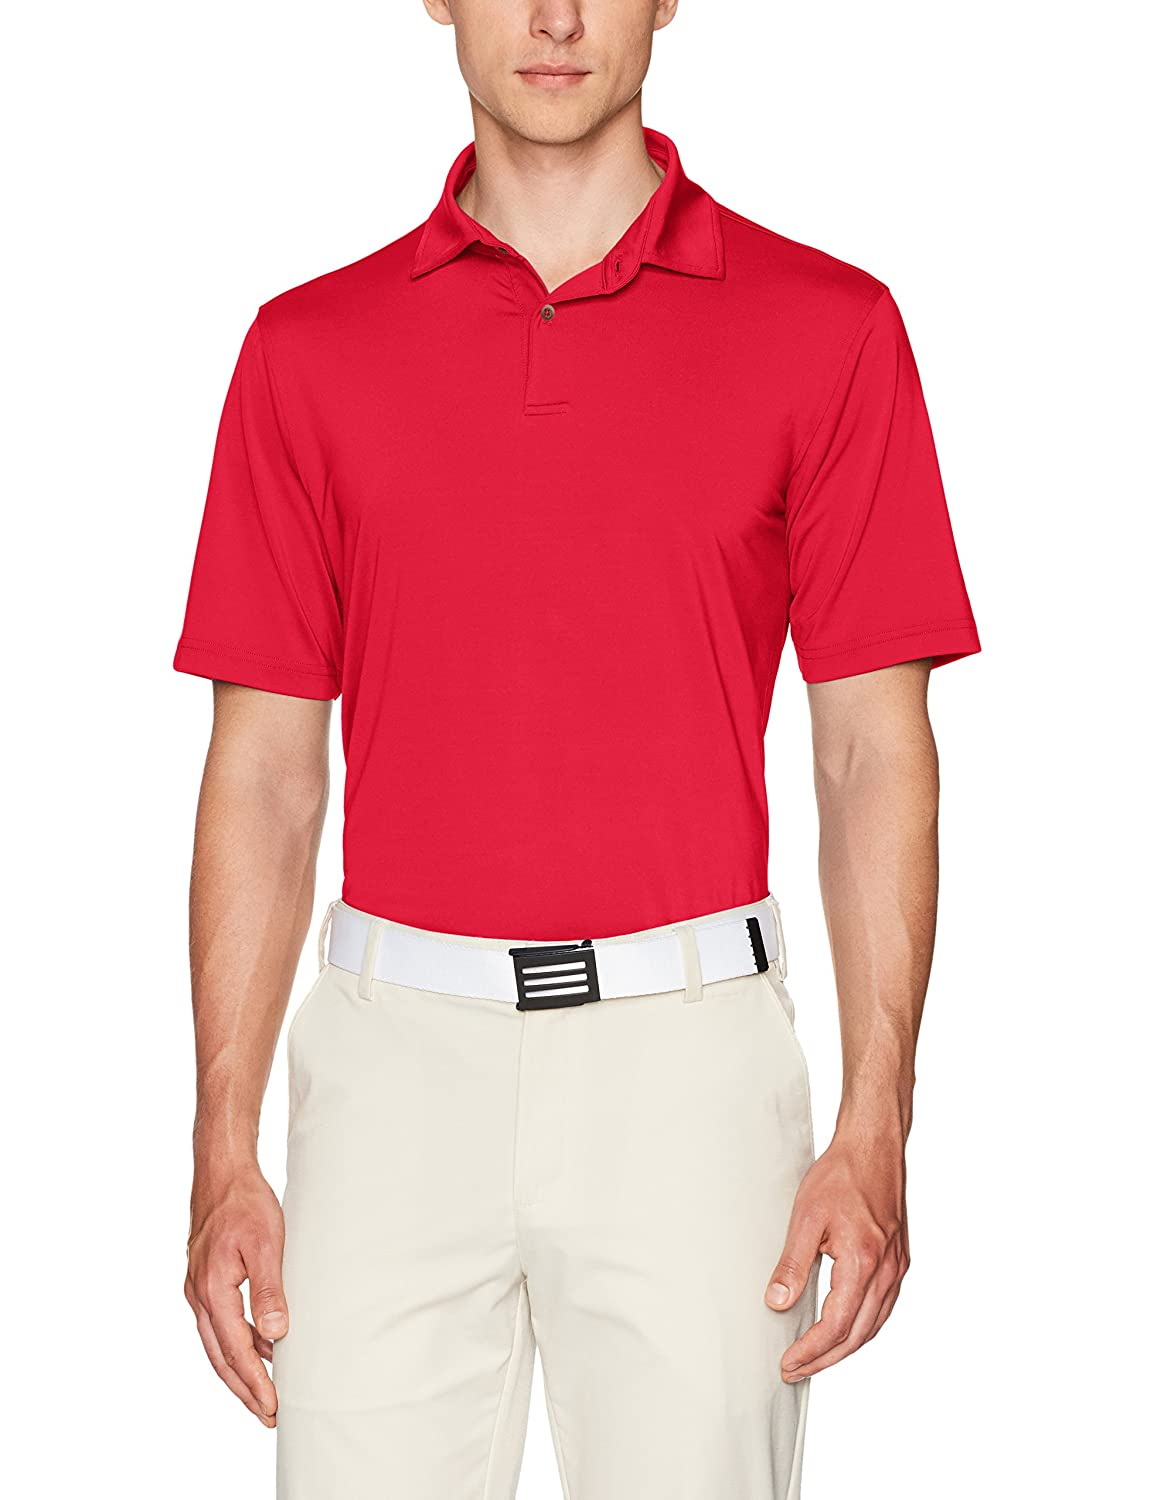 Fairway & Grüne Made Herren Made Grüne in den USA Solid Jersey Polo 5280cd